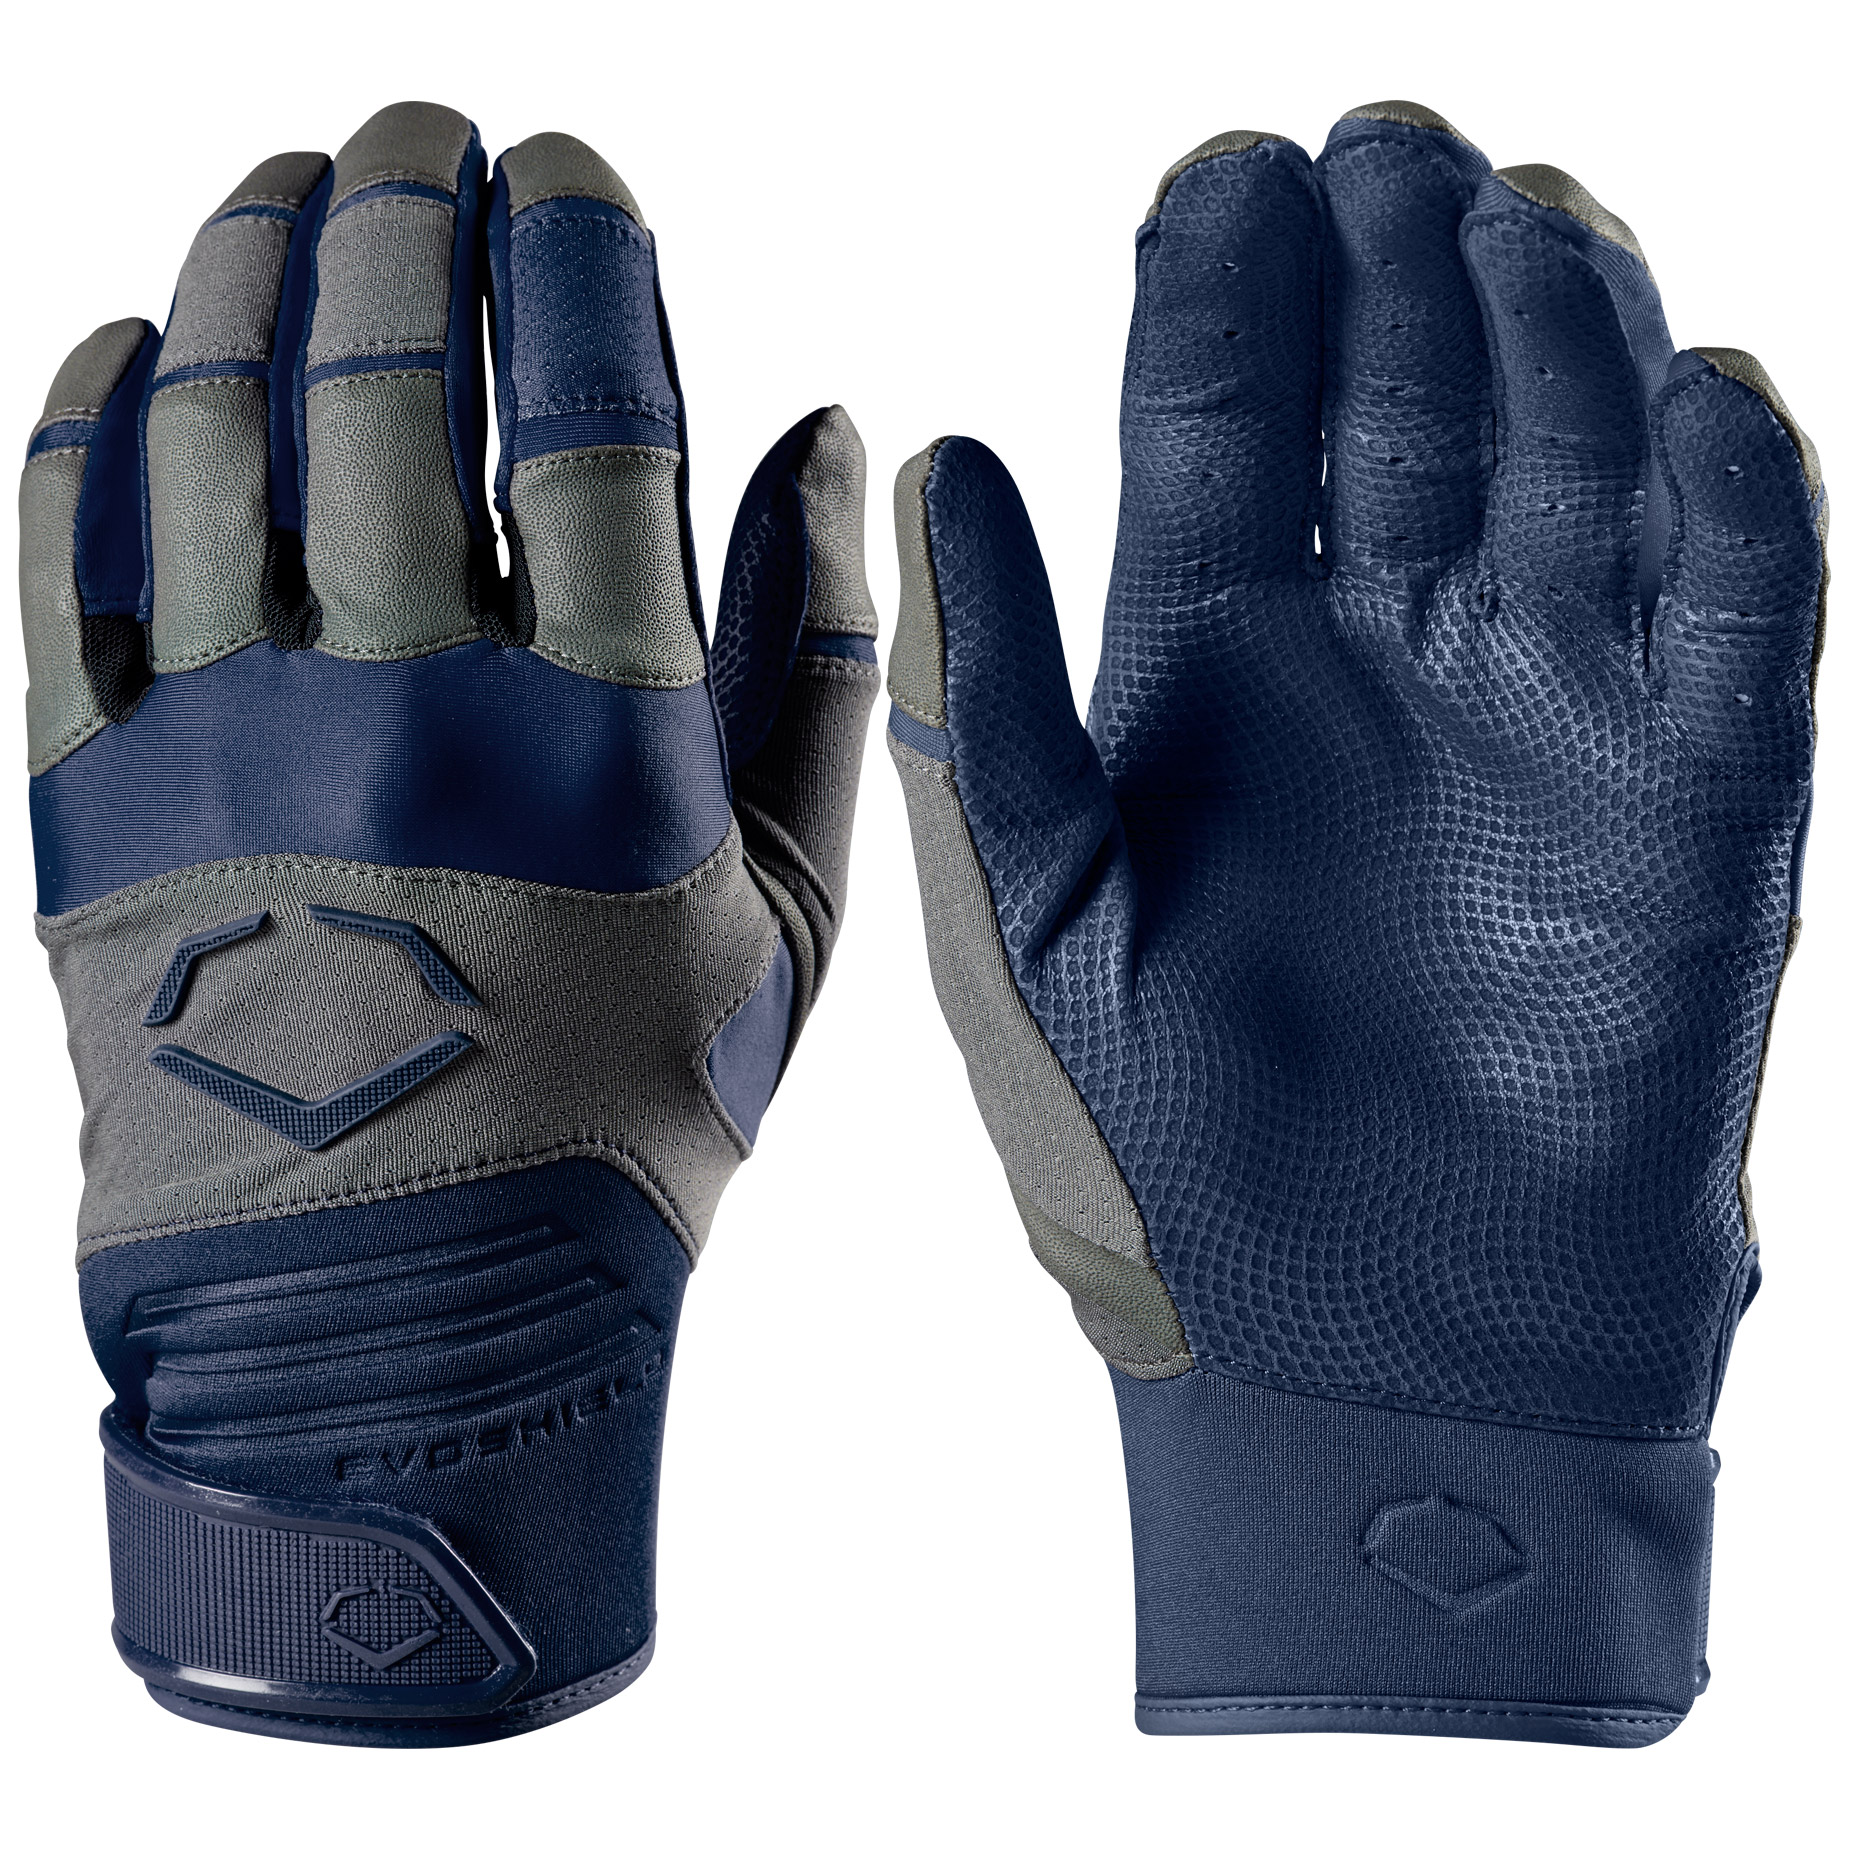 Evoshield Aggressor Adult Baseball/Softball Batting Gloves